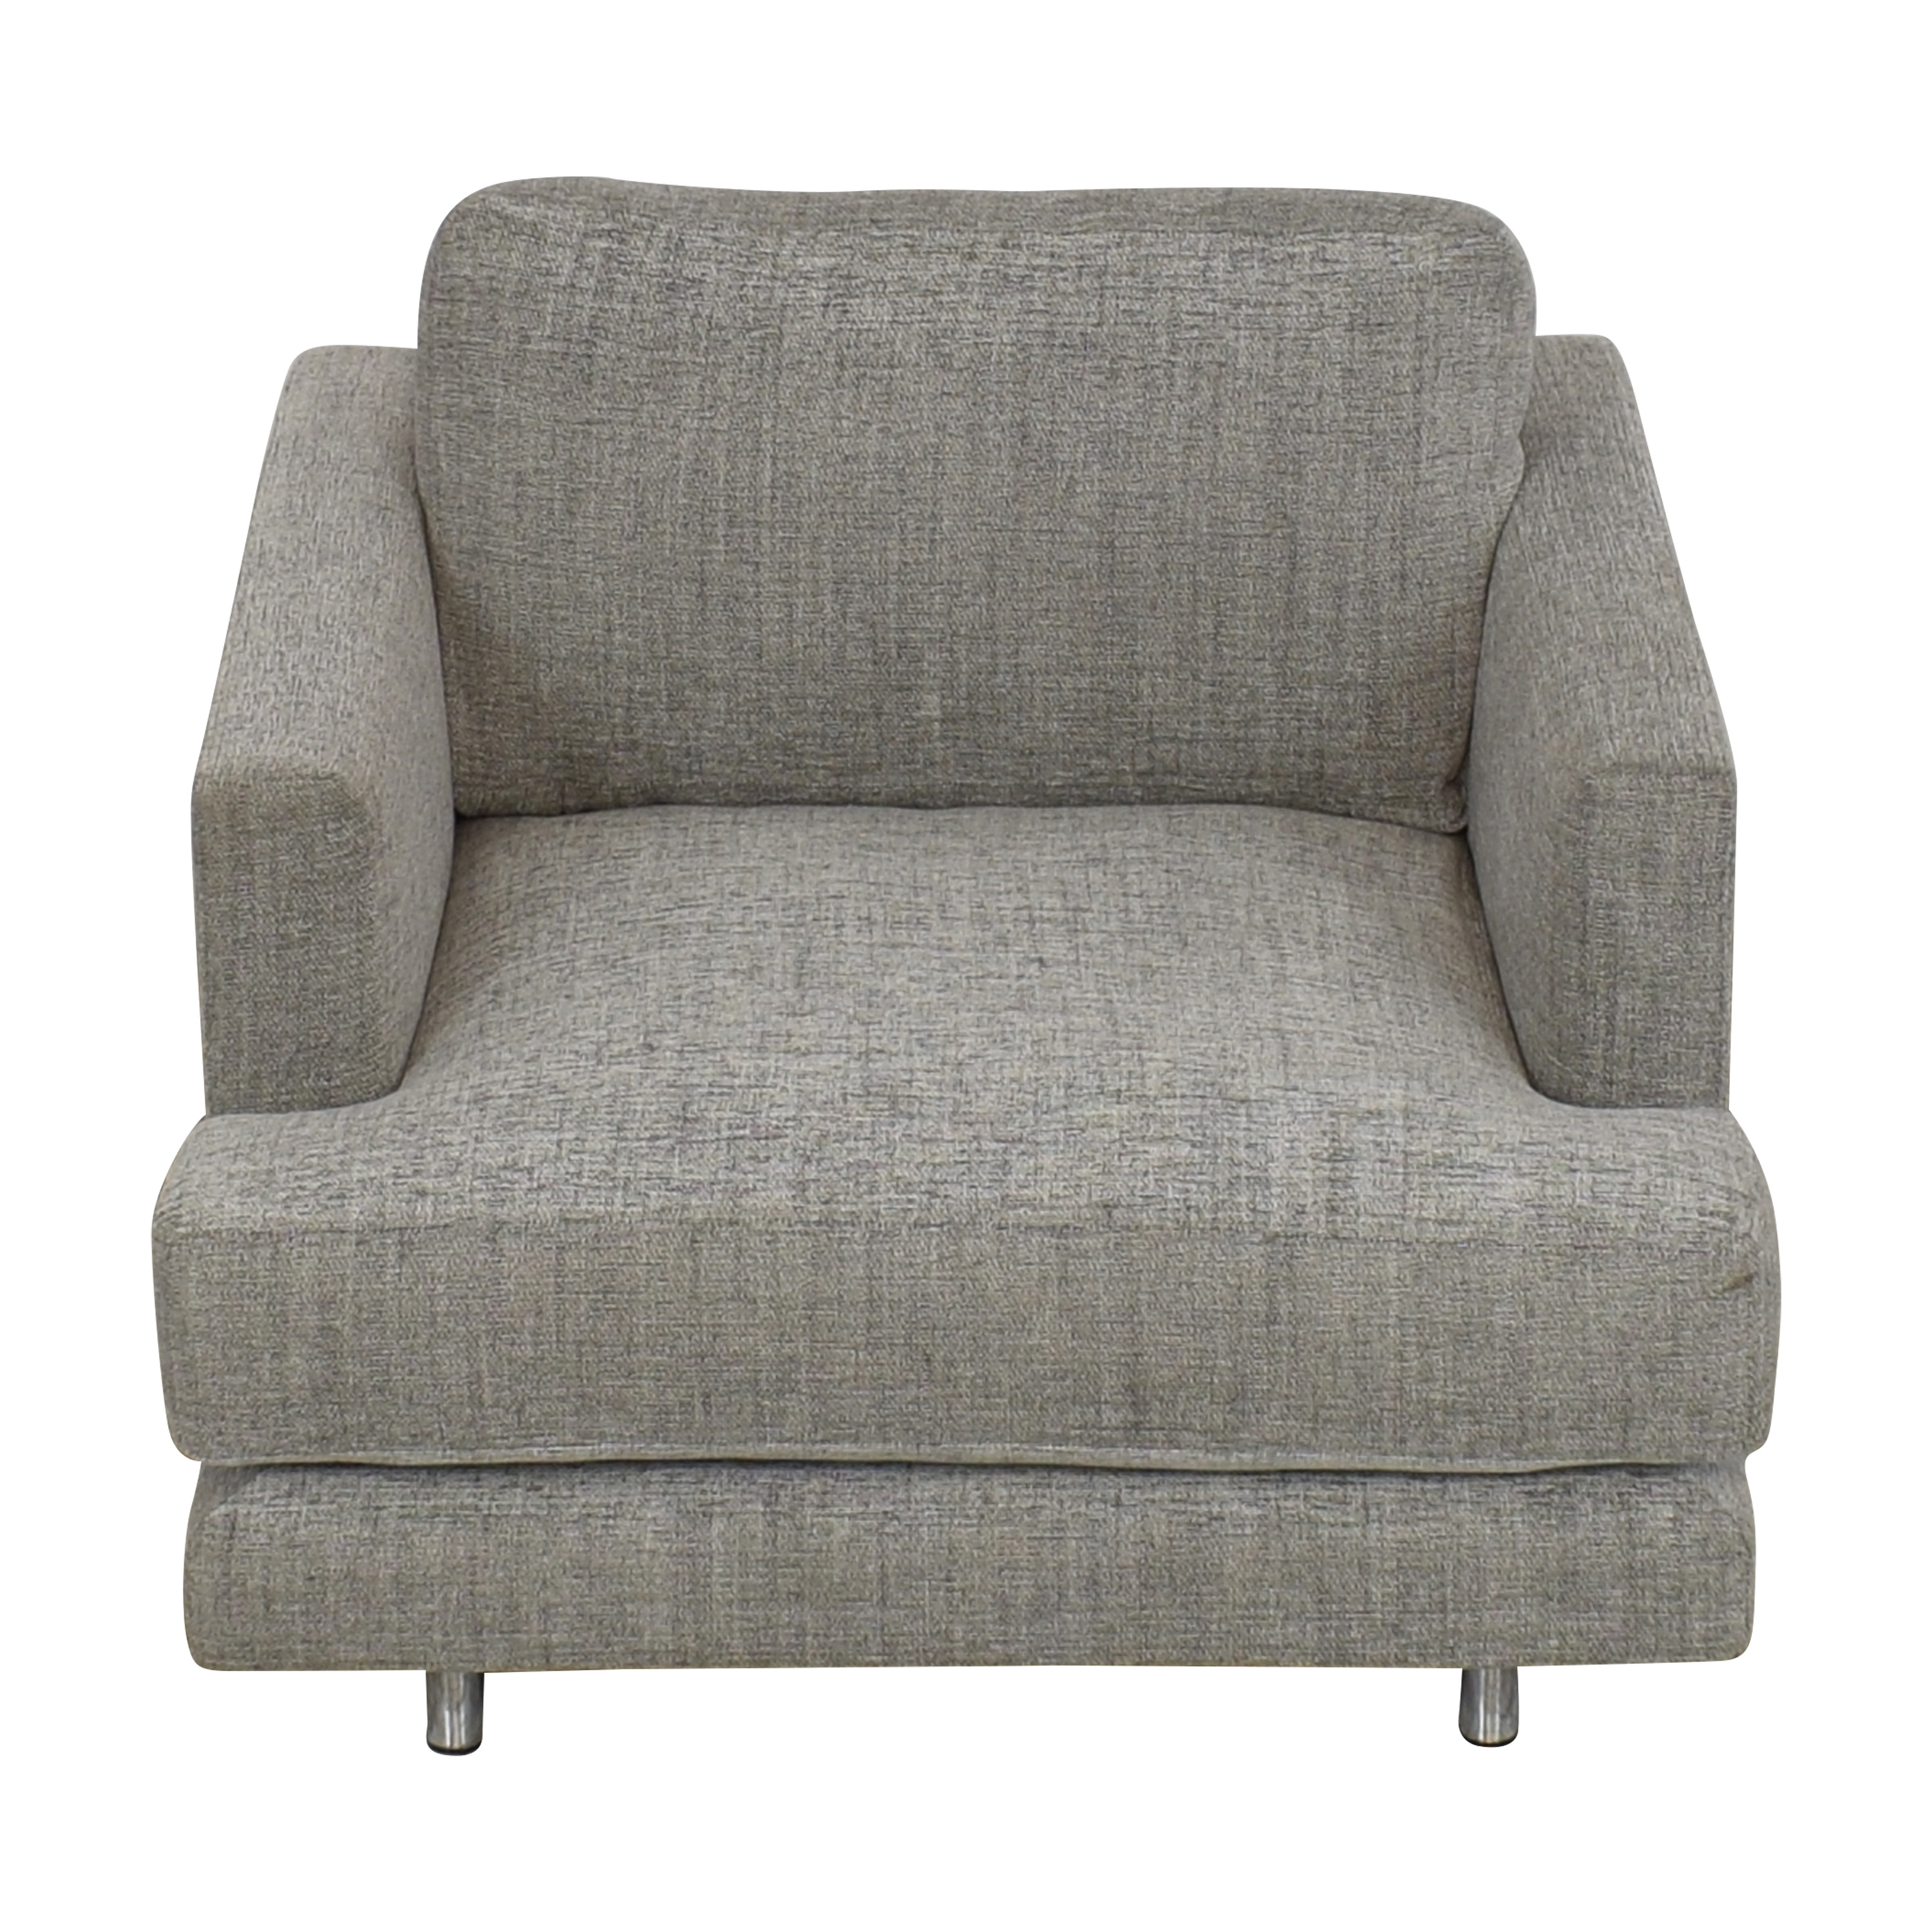 Knoll Knoll D'Urso Contract Lounge Chair for sale